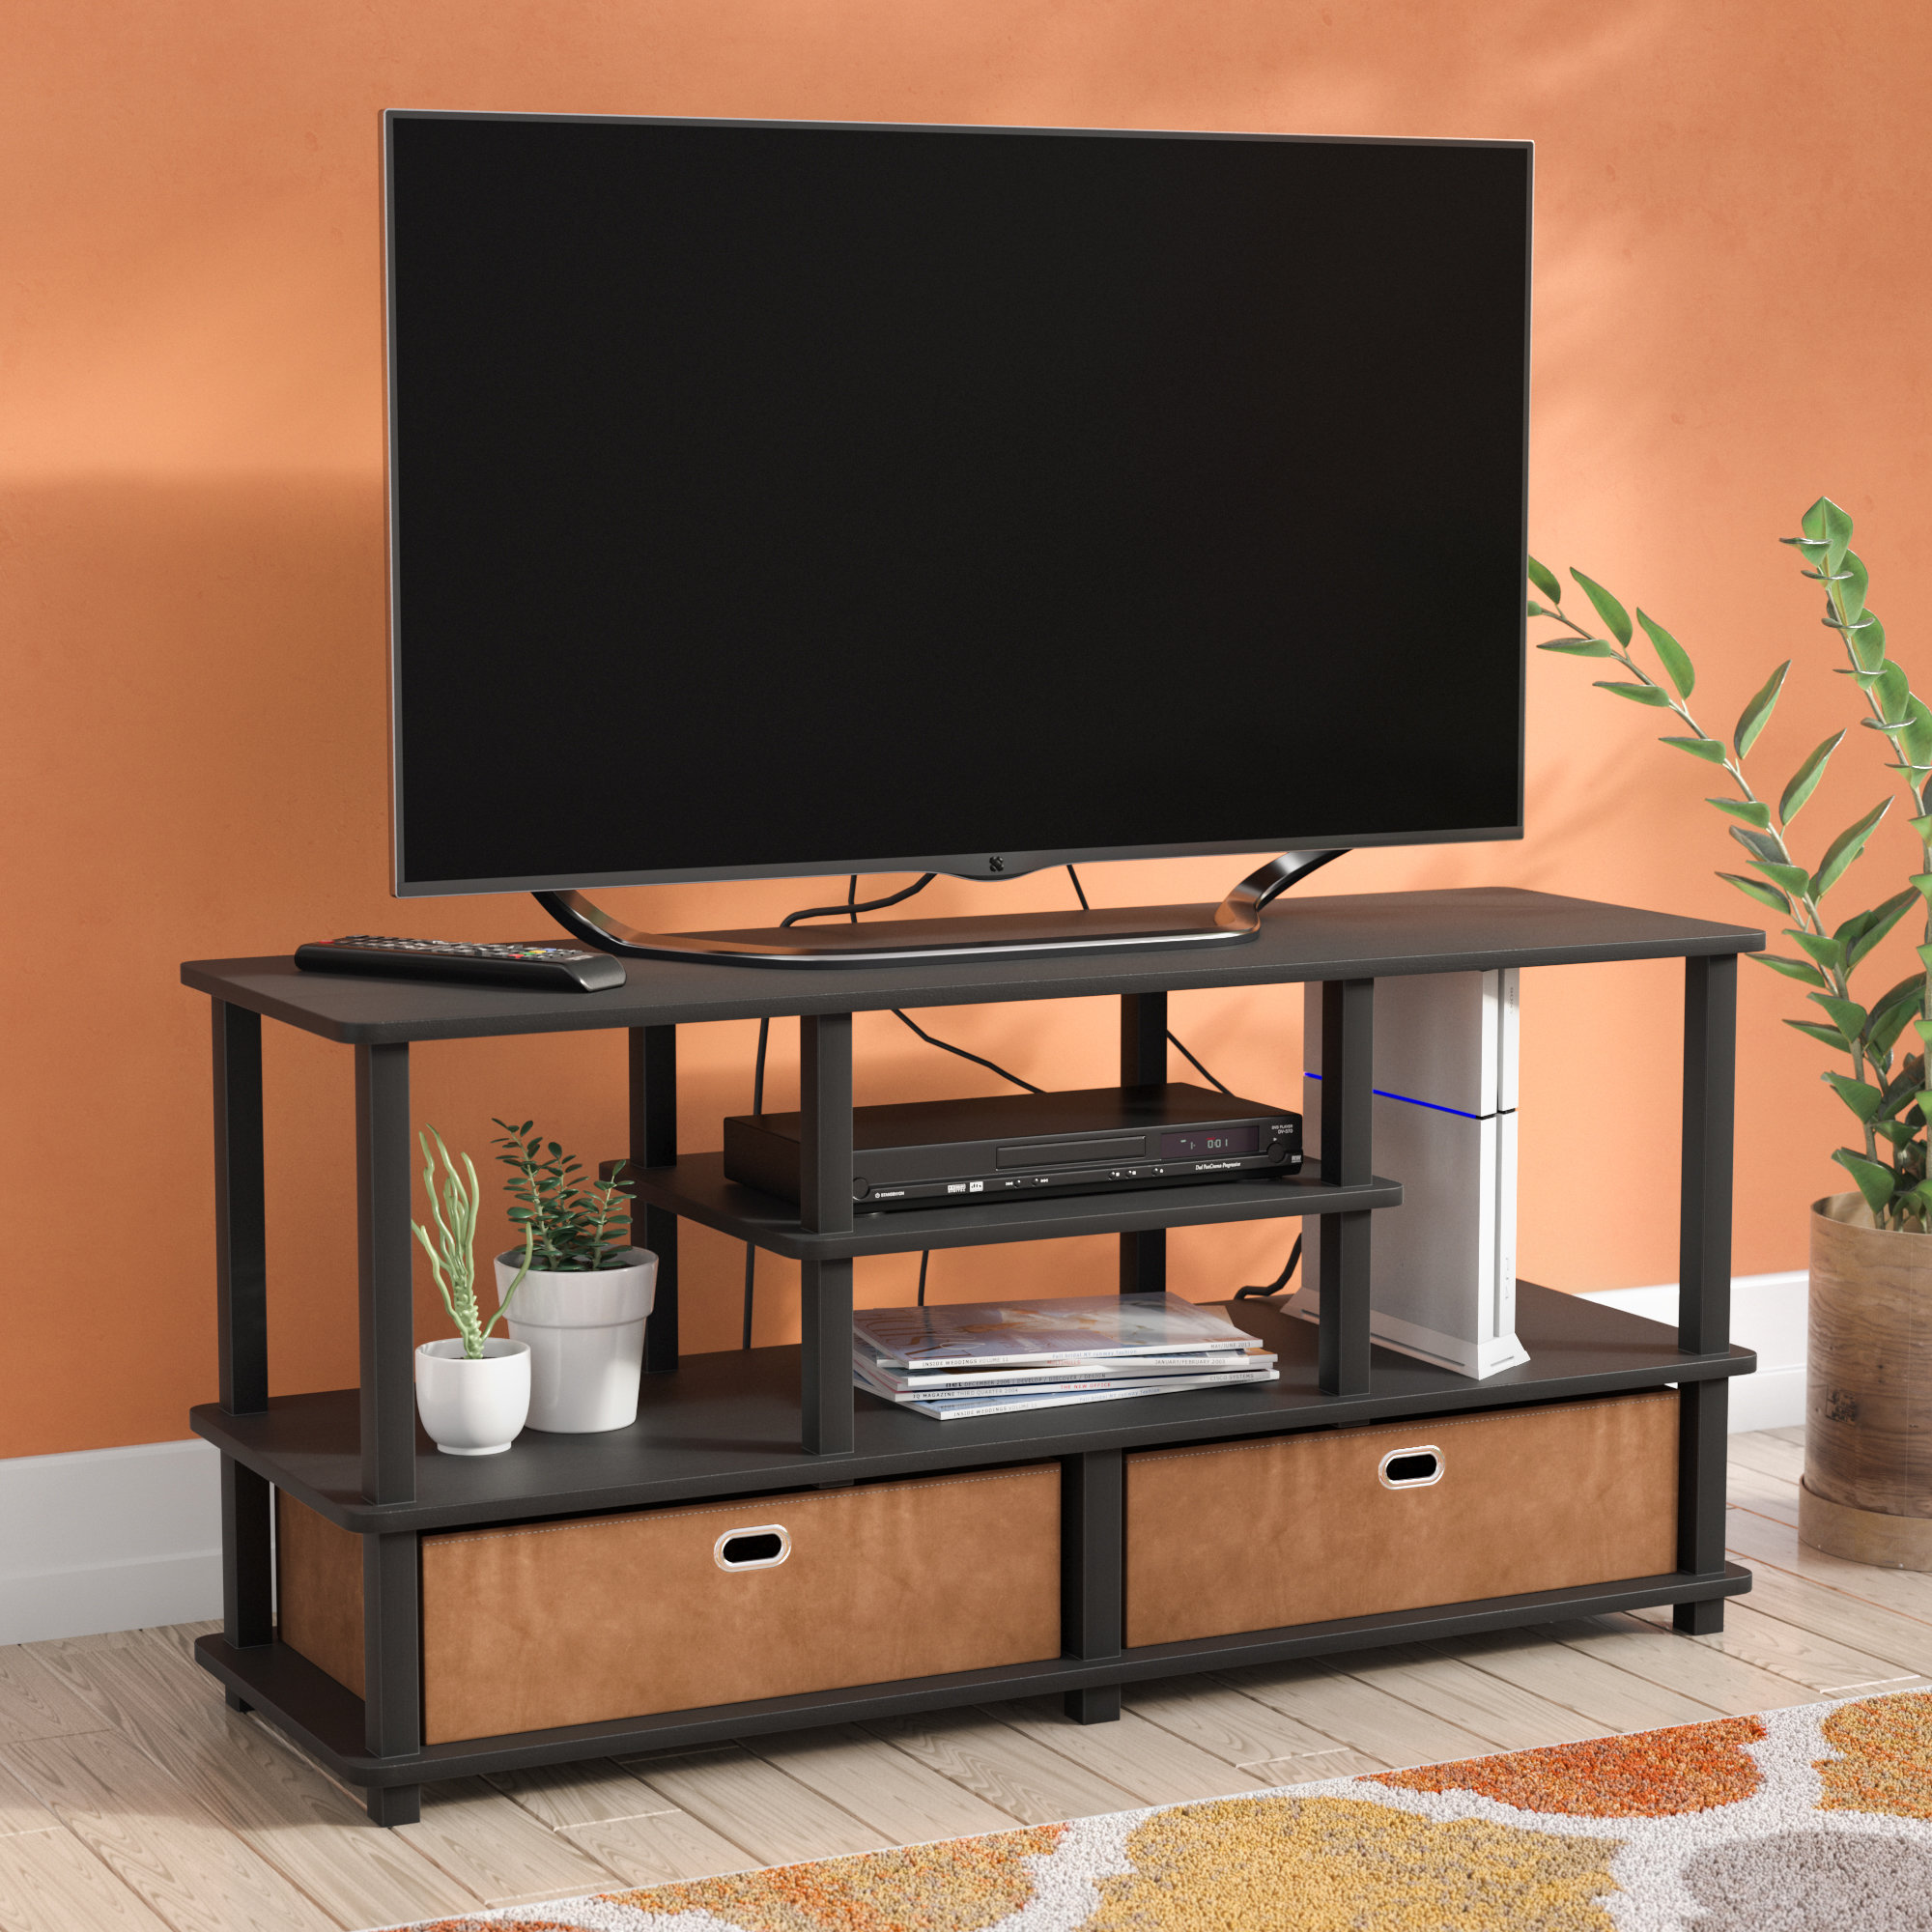 inches stand stands entertainment centers you love crow for tvs rustic corner accent table quickview barn door console high tops bar custom hybrid zoey night with baskets walnut